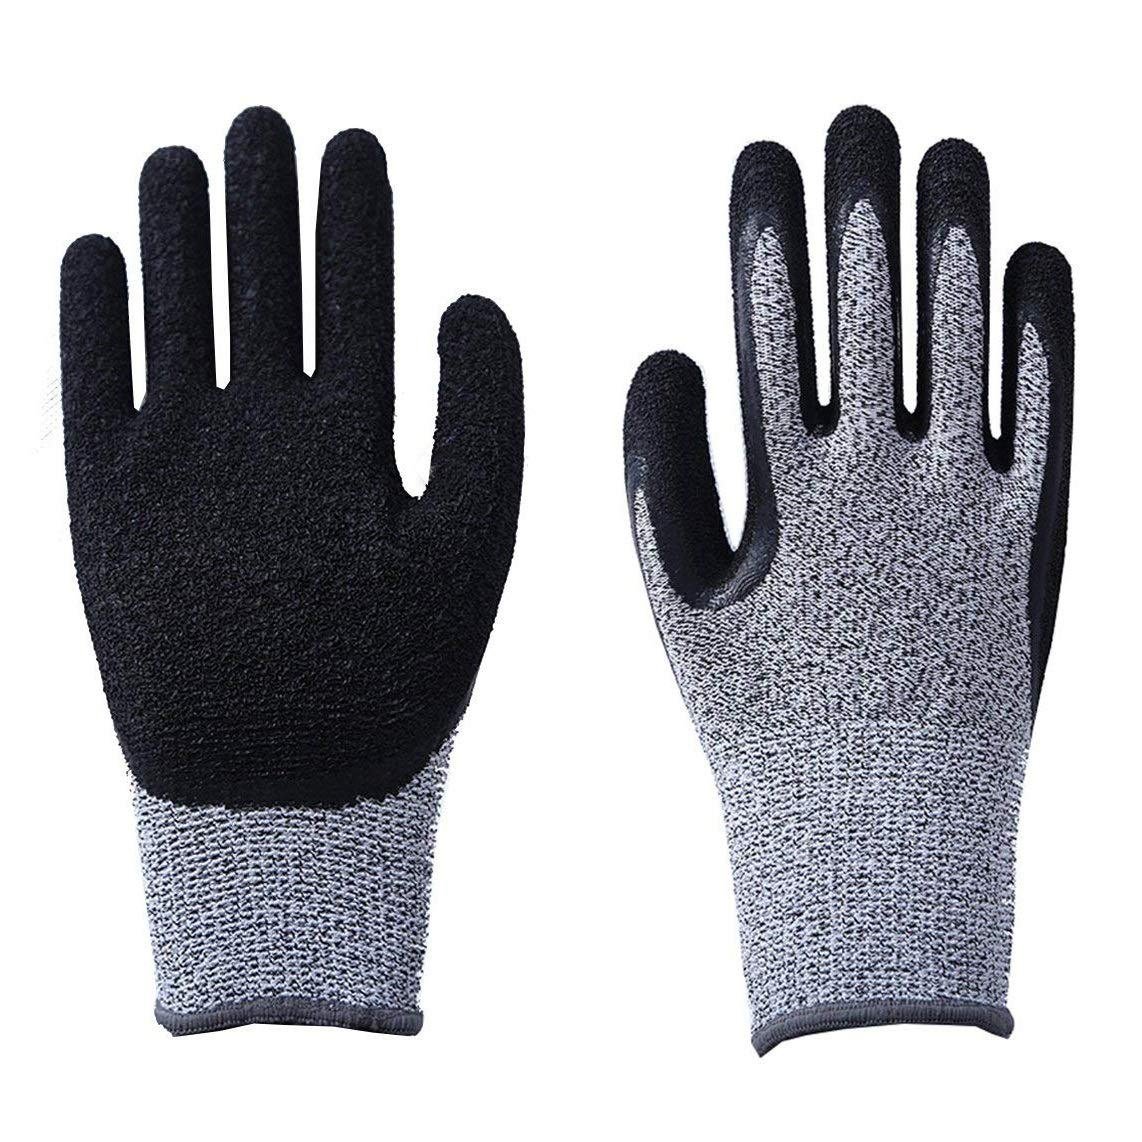 CCBETTER Cut Resistant Gloves Safety Work Gloves with Level 5 Protection Kitchen and Garden Mittens for Meat Cutting Wood Carving Driving and Outdoor Activities (M, Grey)